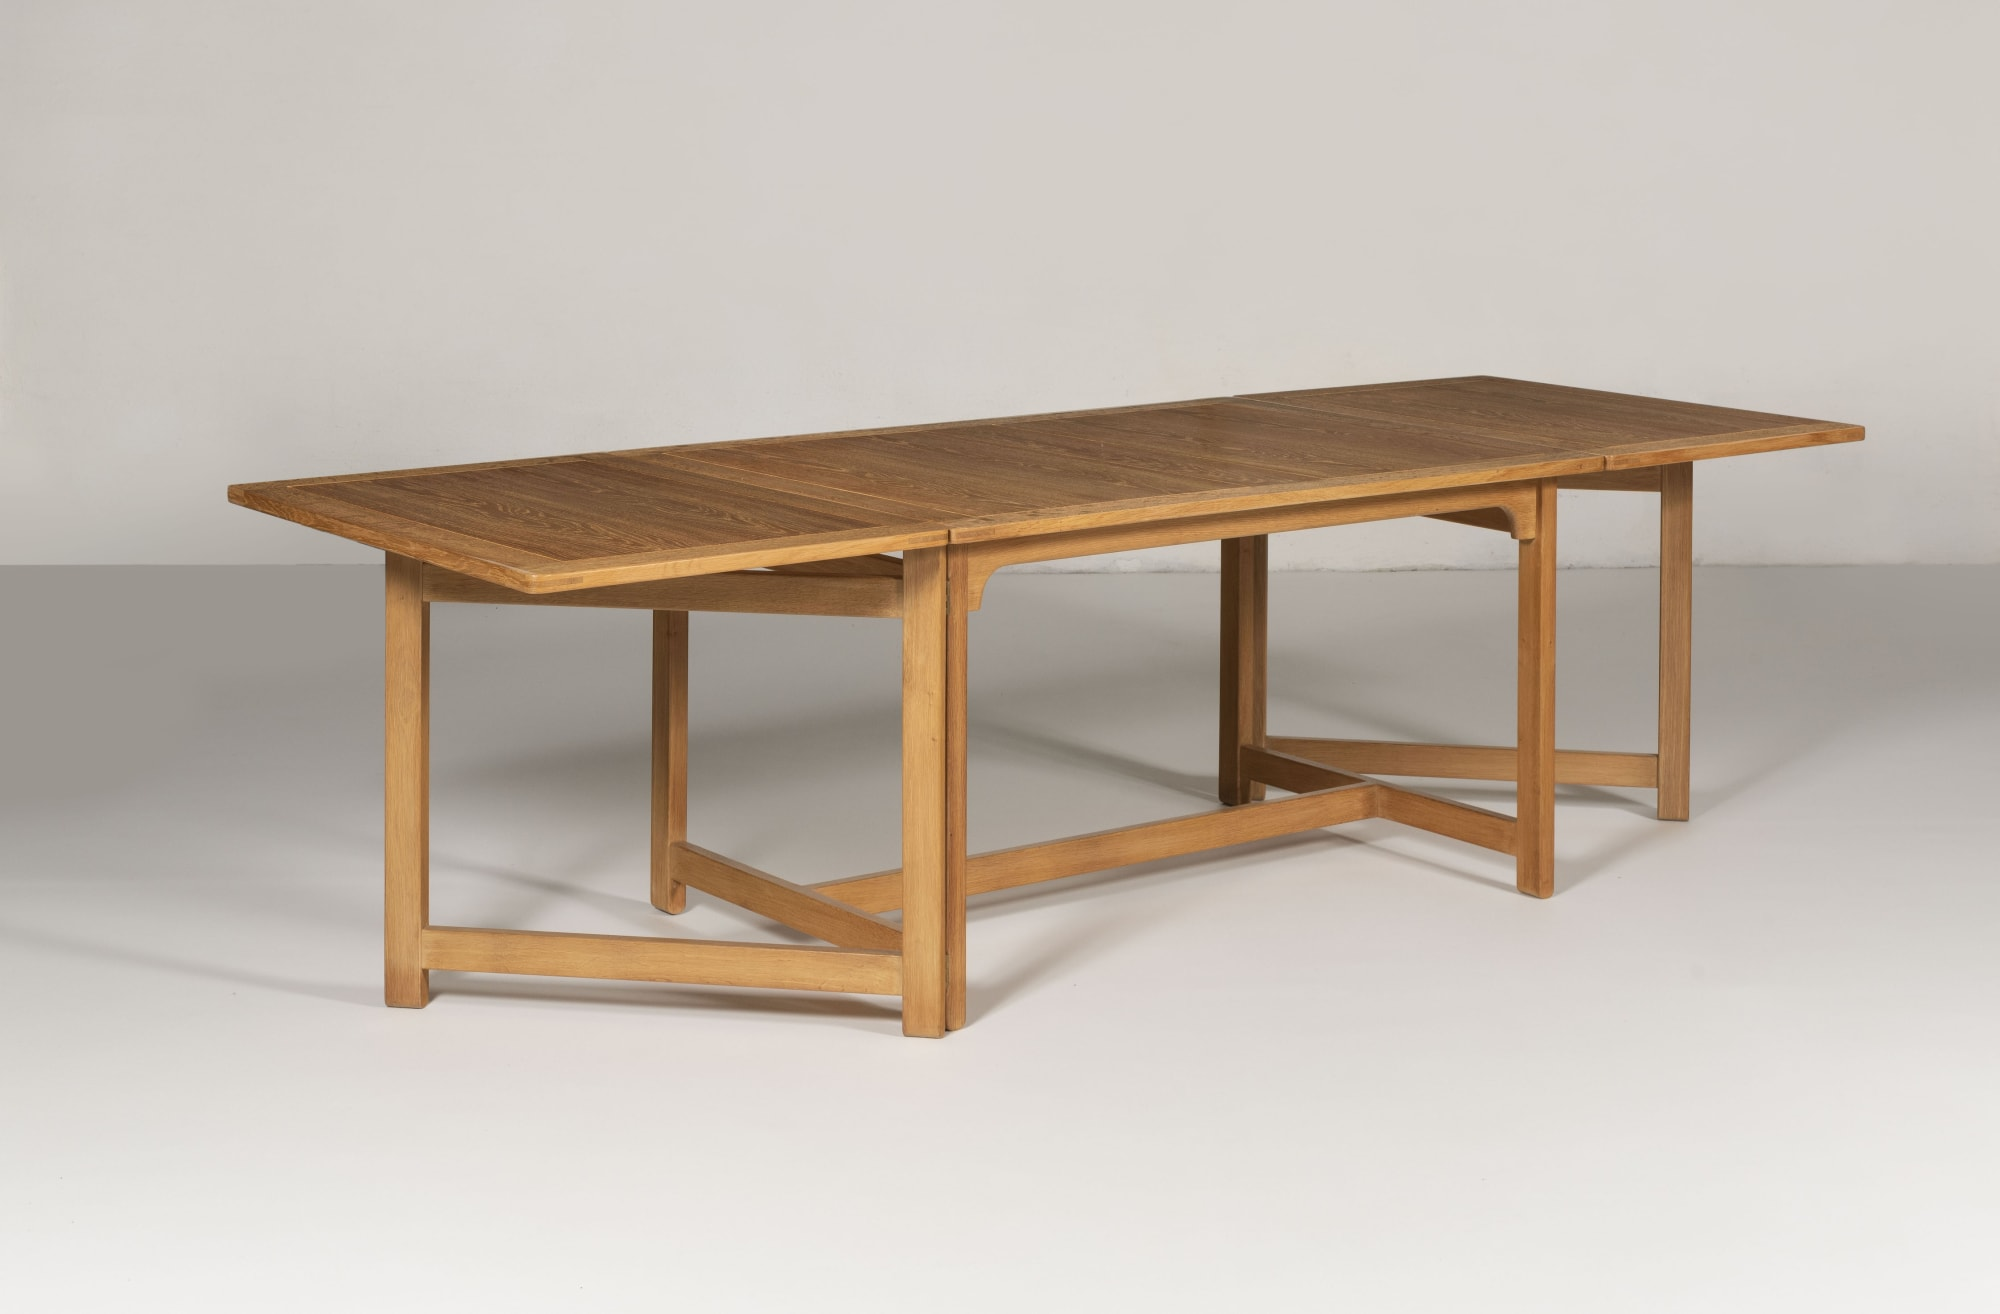 COLLECTING DESIGN: AN INTRODUCTION TO ICONIC ARCHITECTS AND CABINET MAKERS